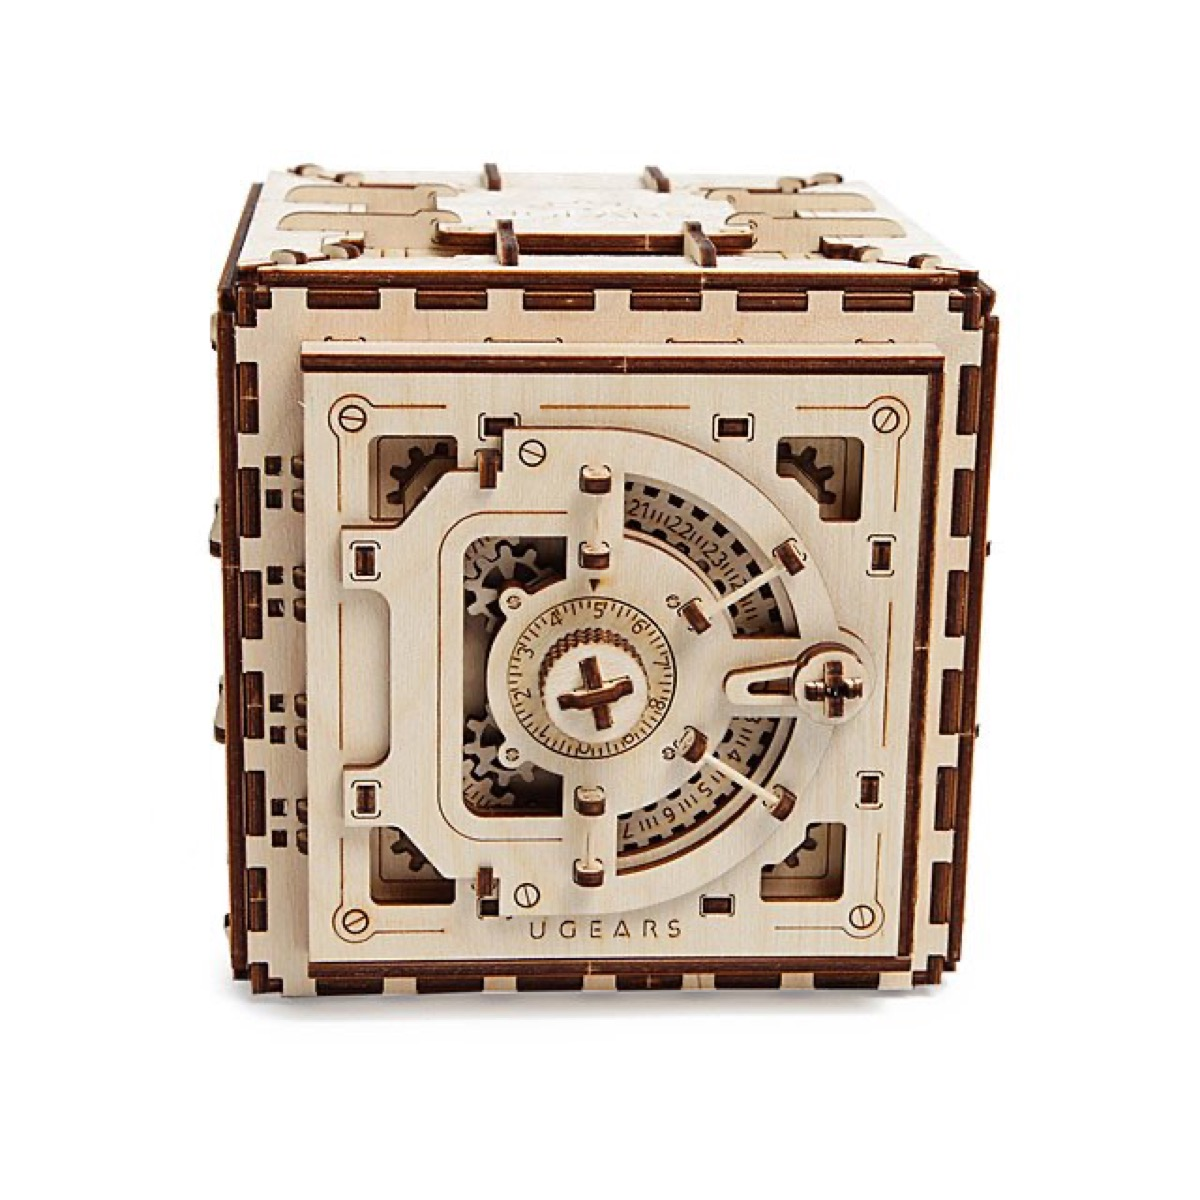 wooden puzzle in the shape of a safe